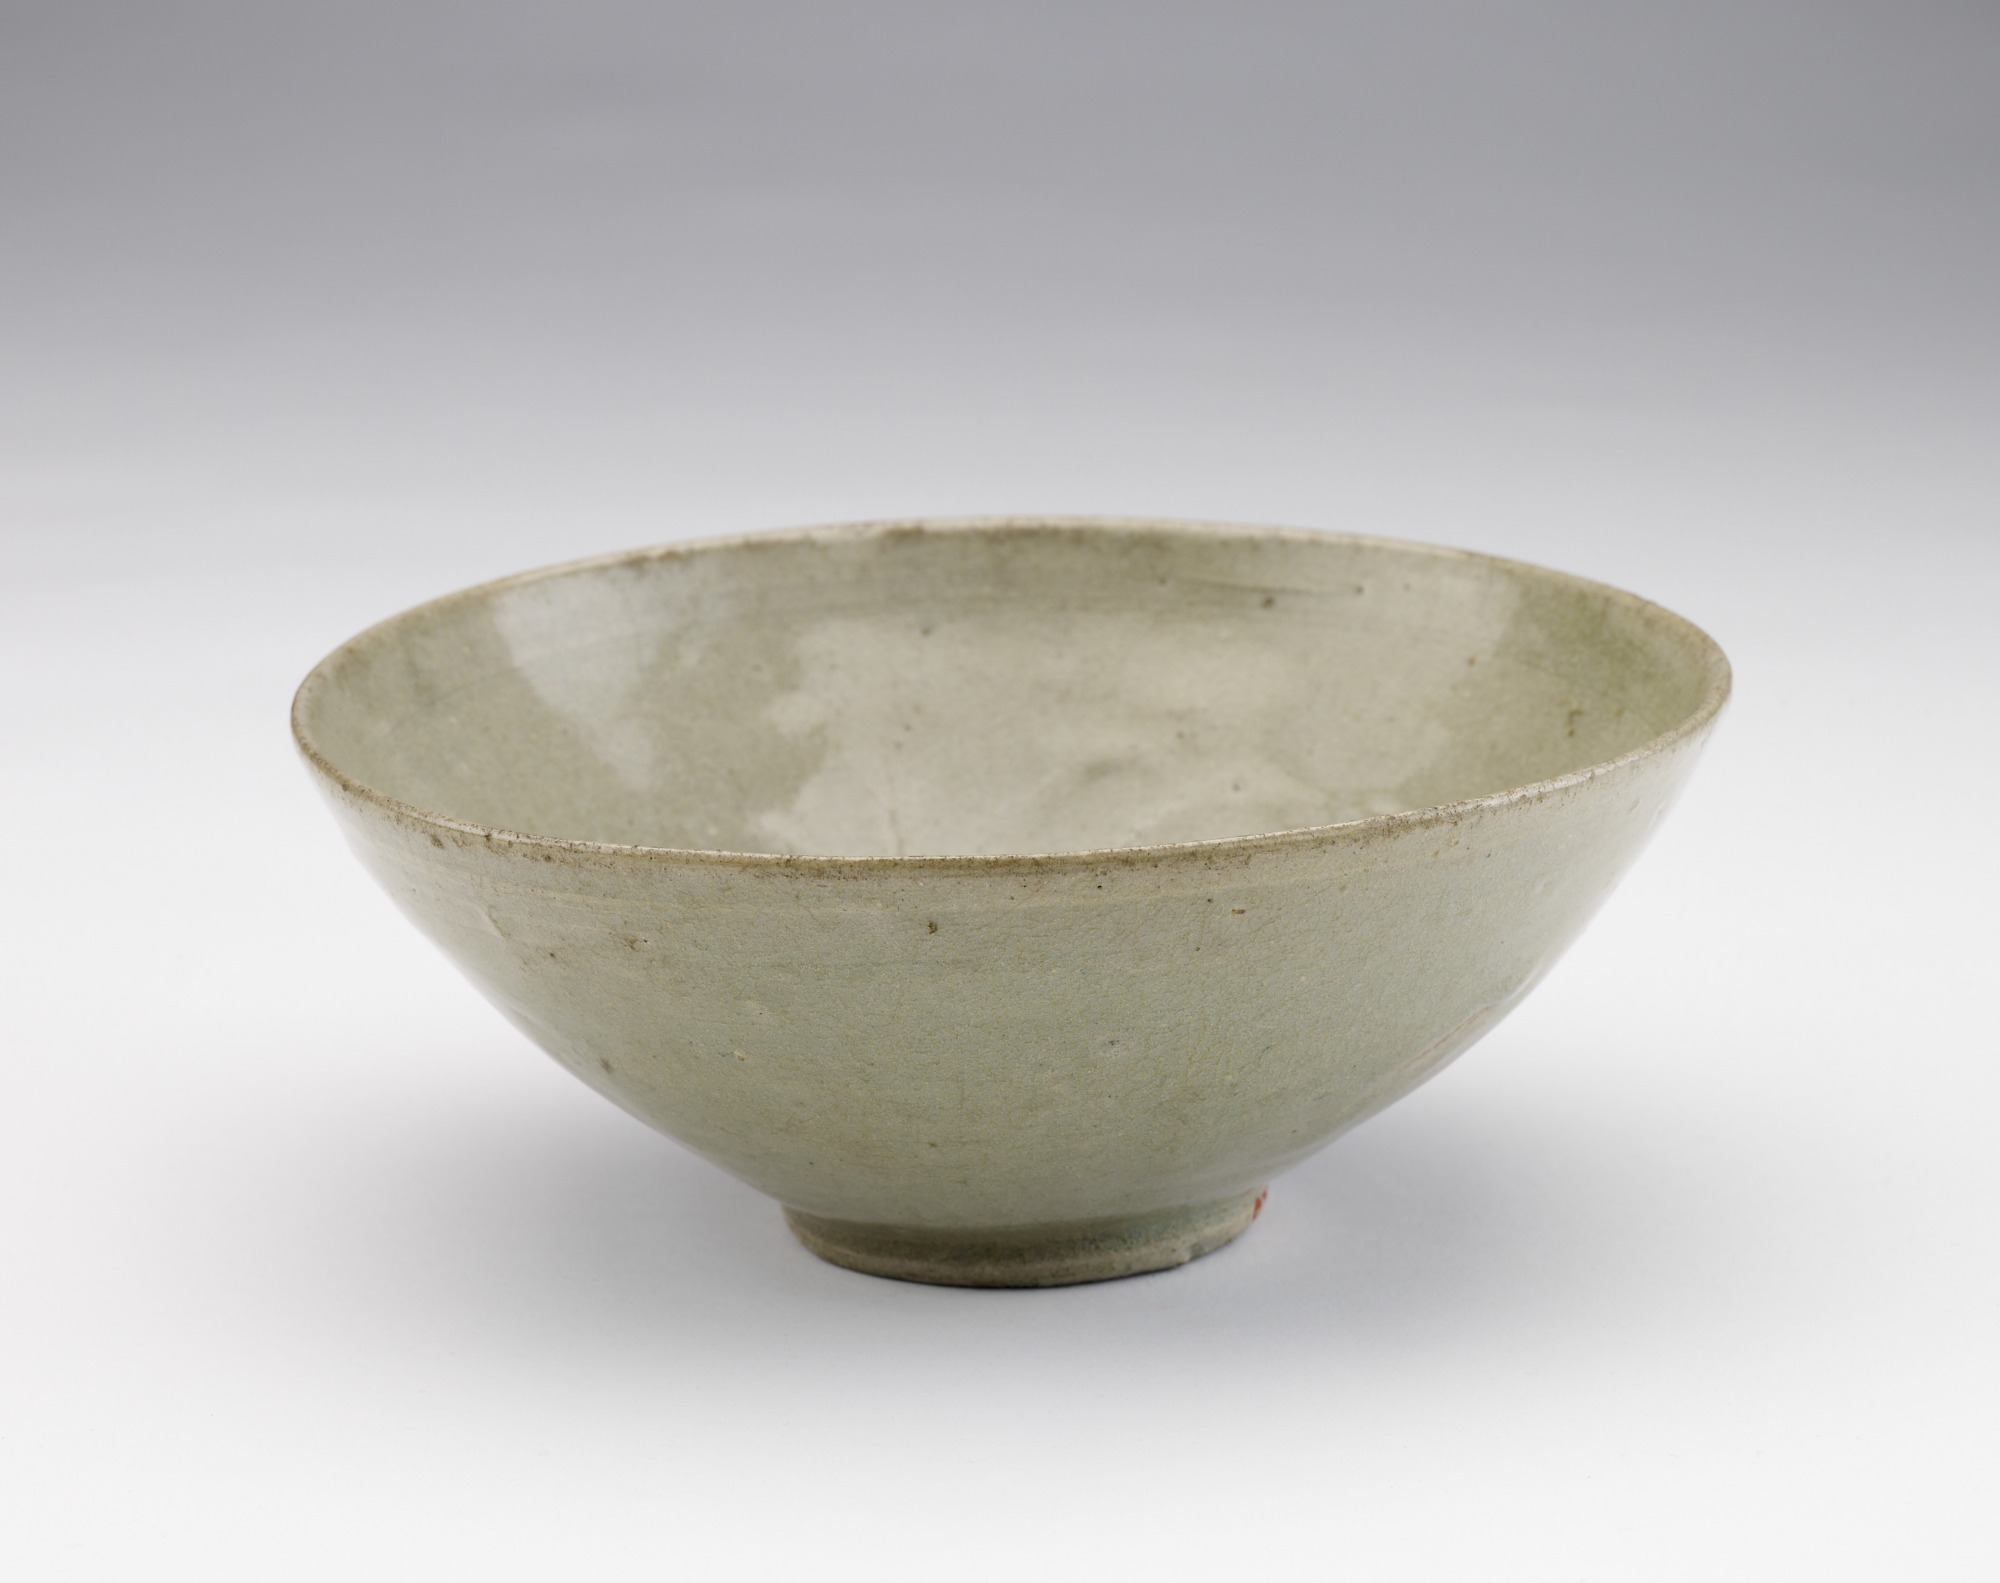 Bowl with molded decor of single flower, 3/4 profile